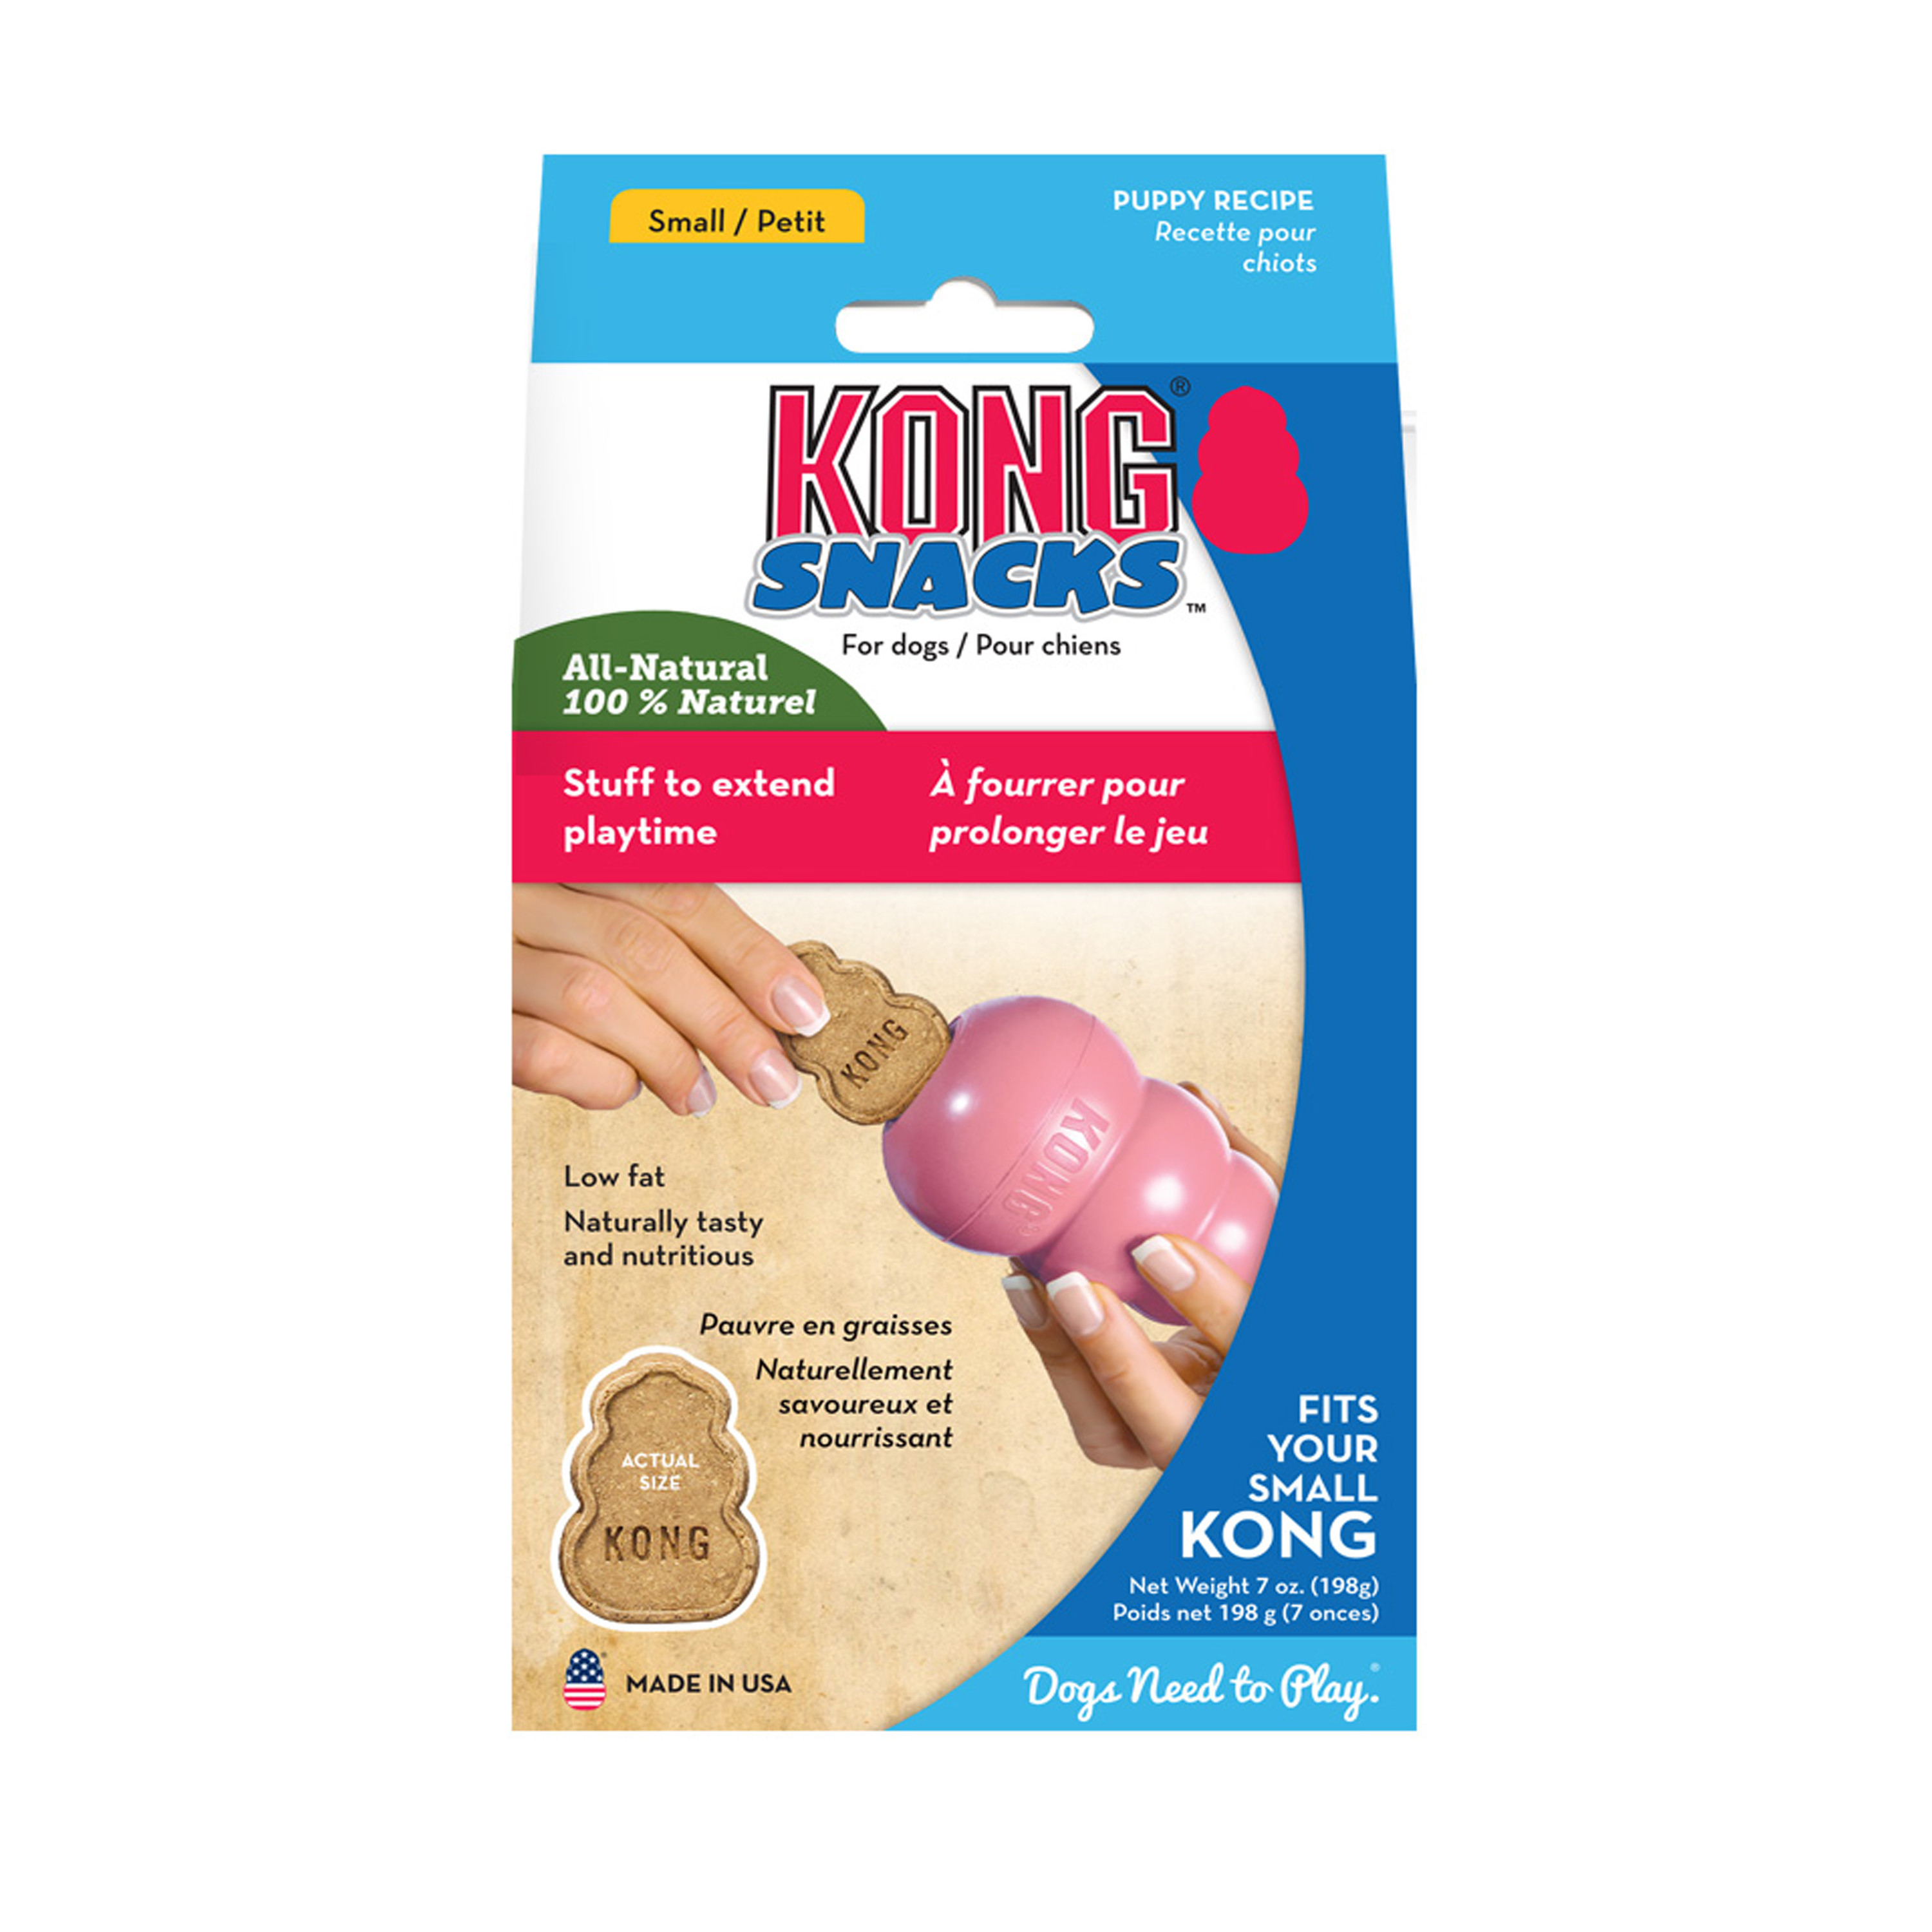 Kong Snacks Puppy Chicken and Rice Small